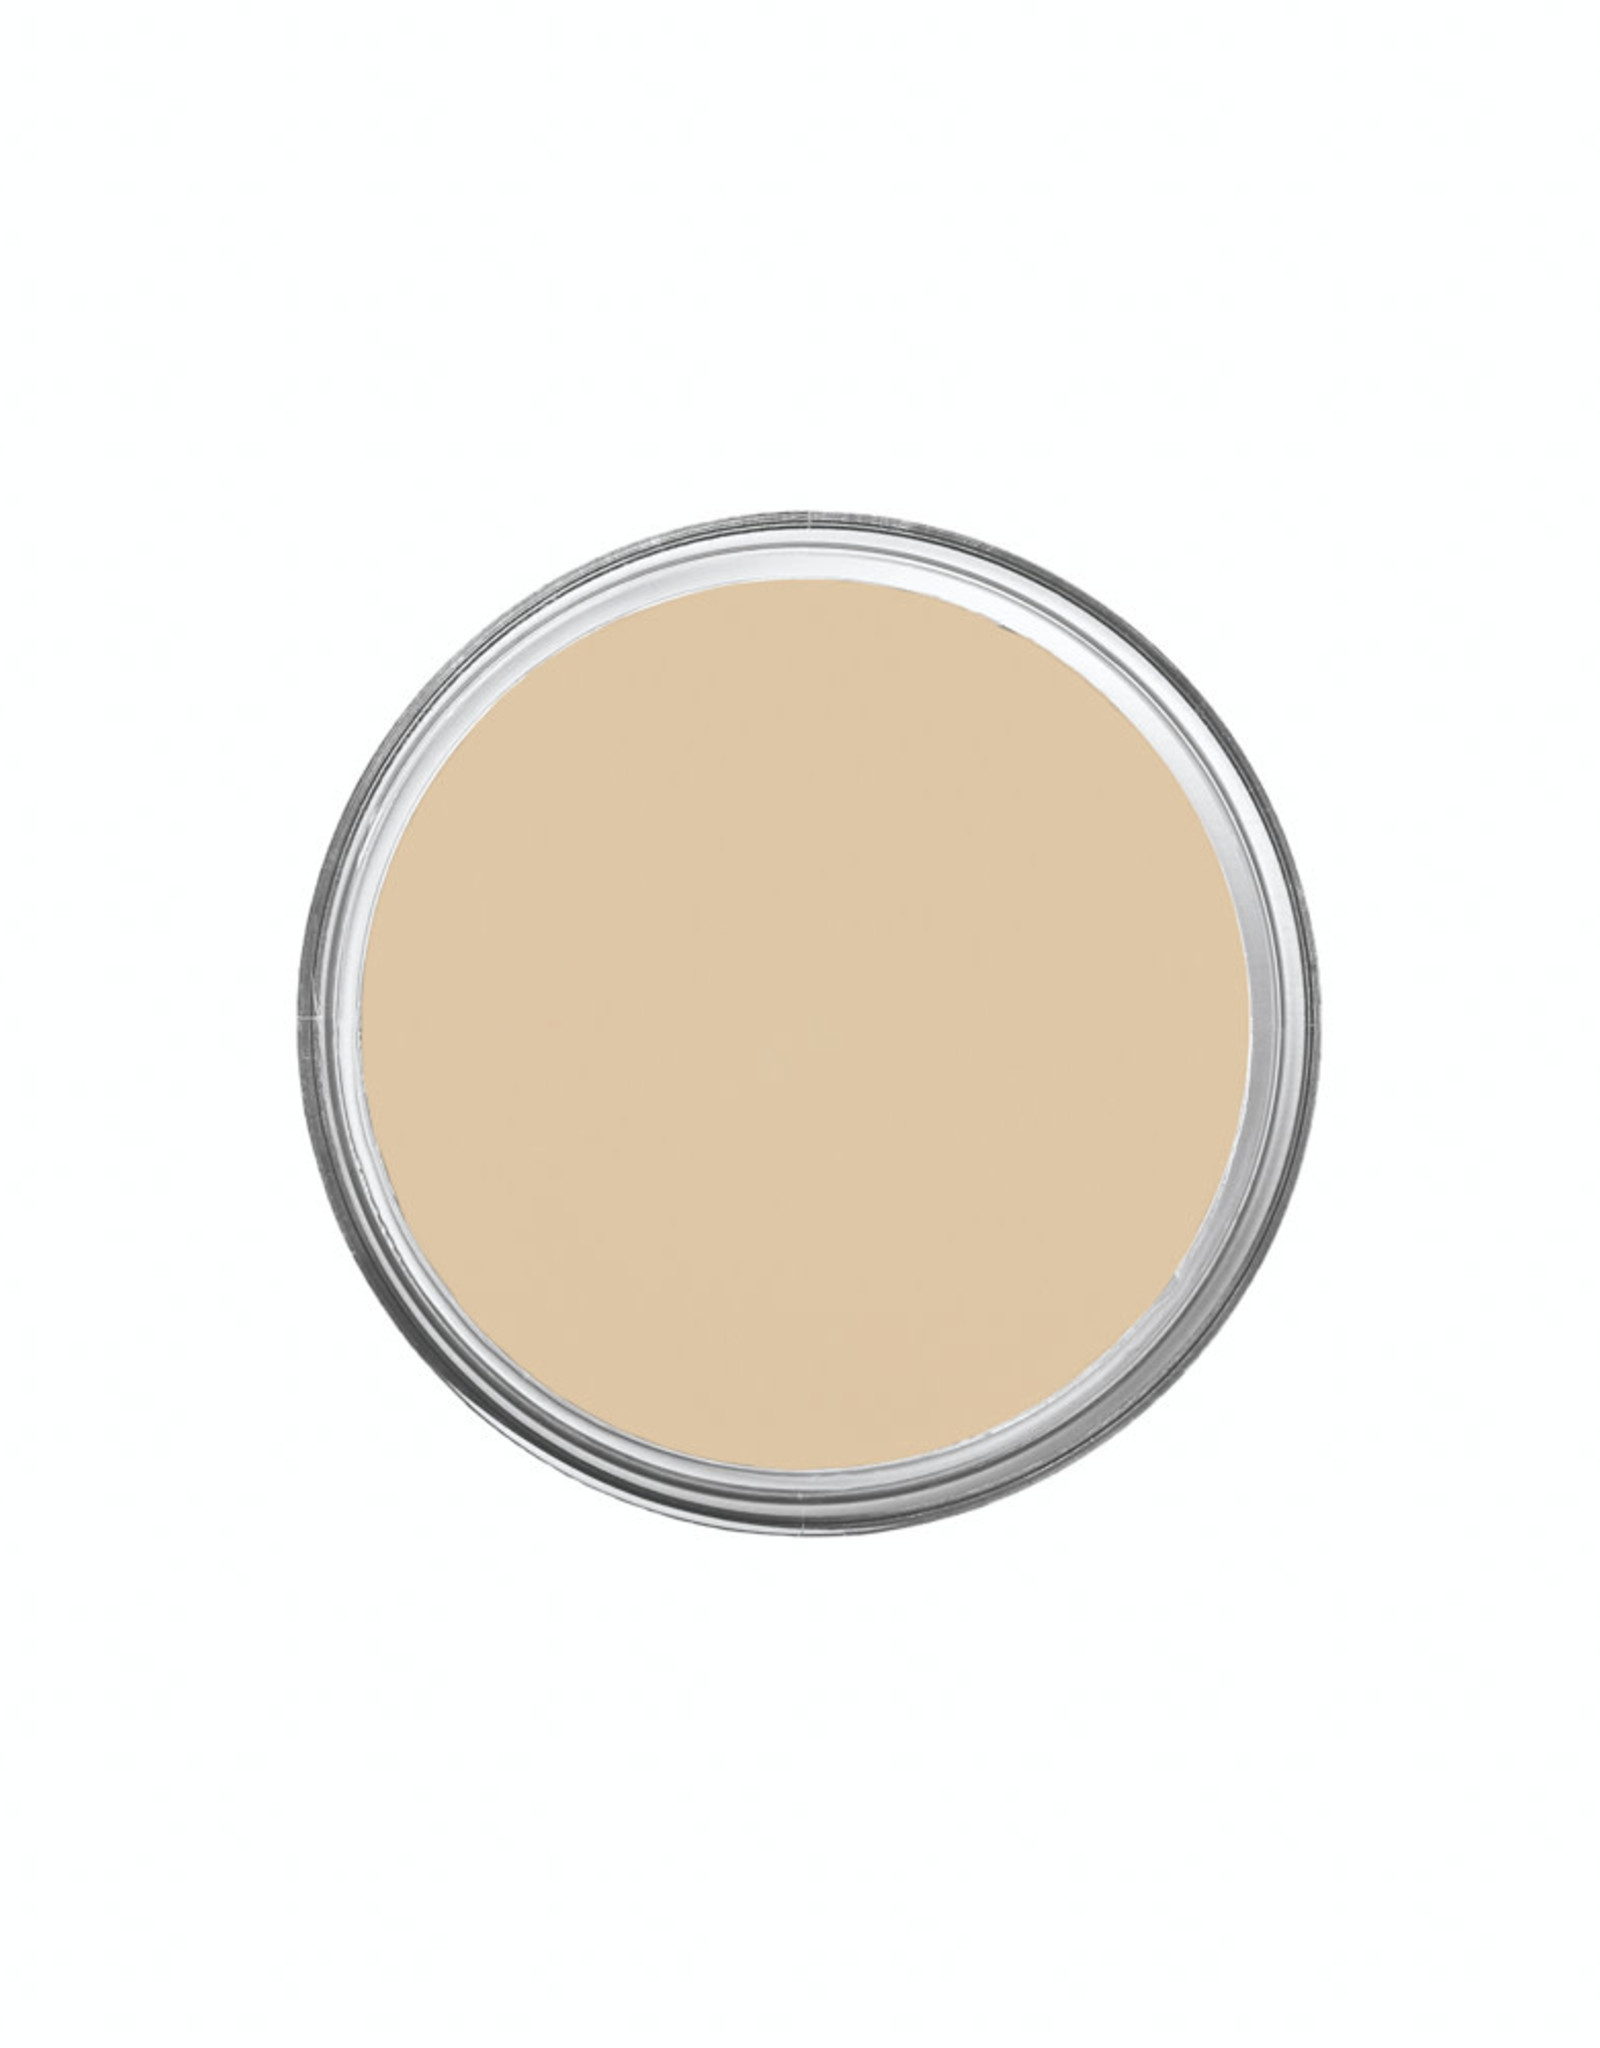 Ben Nye FOUNDATION-MATTE HD, CINE LIGHT BEIGE, .5 OZ